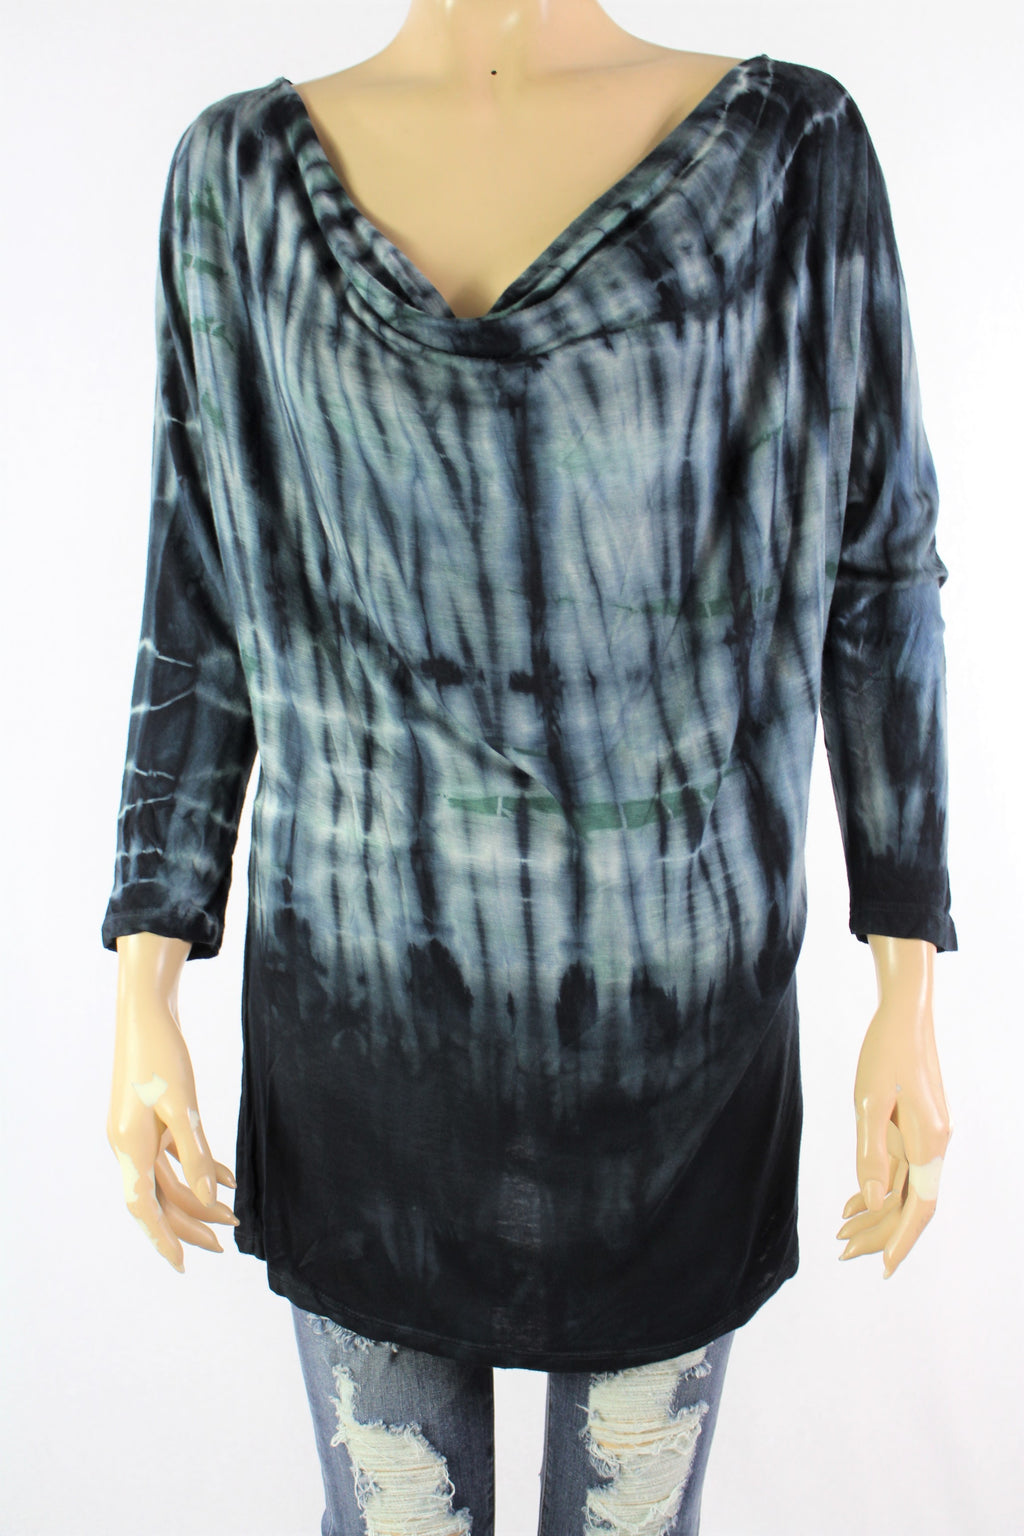 Women's Long Sleeves Tie Dye Top